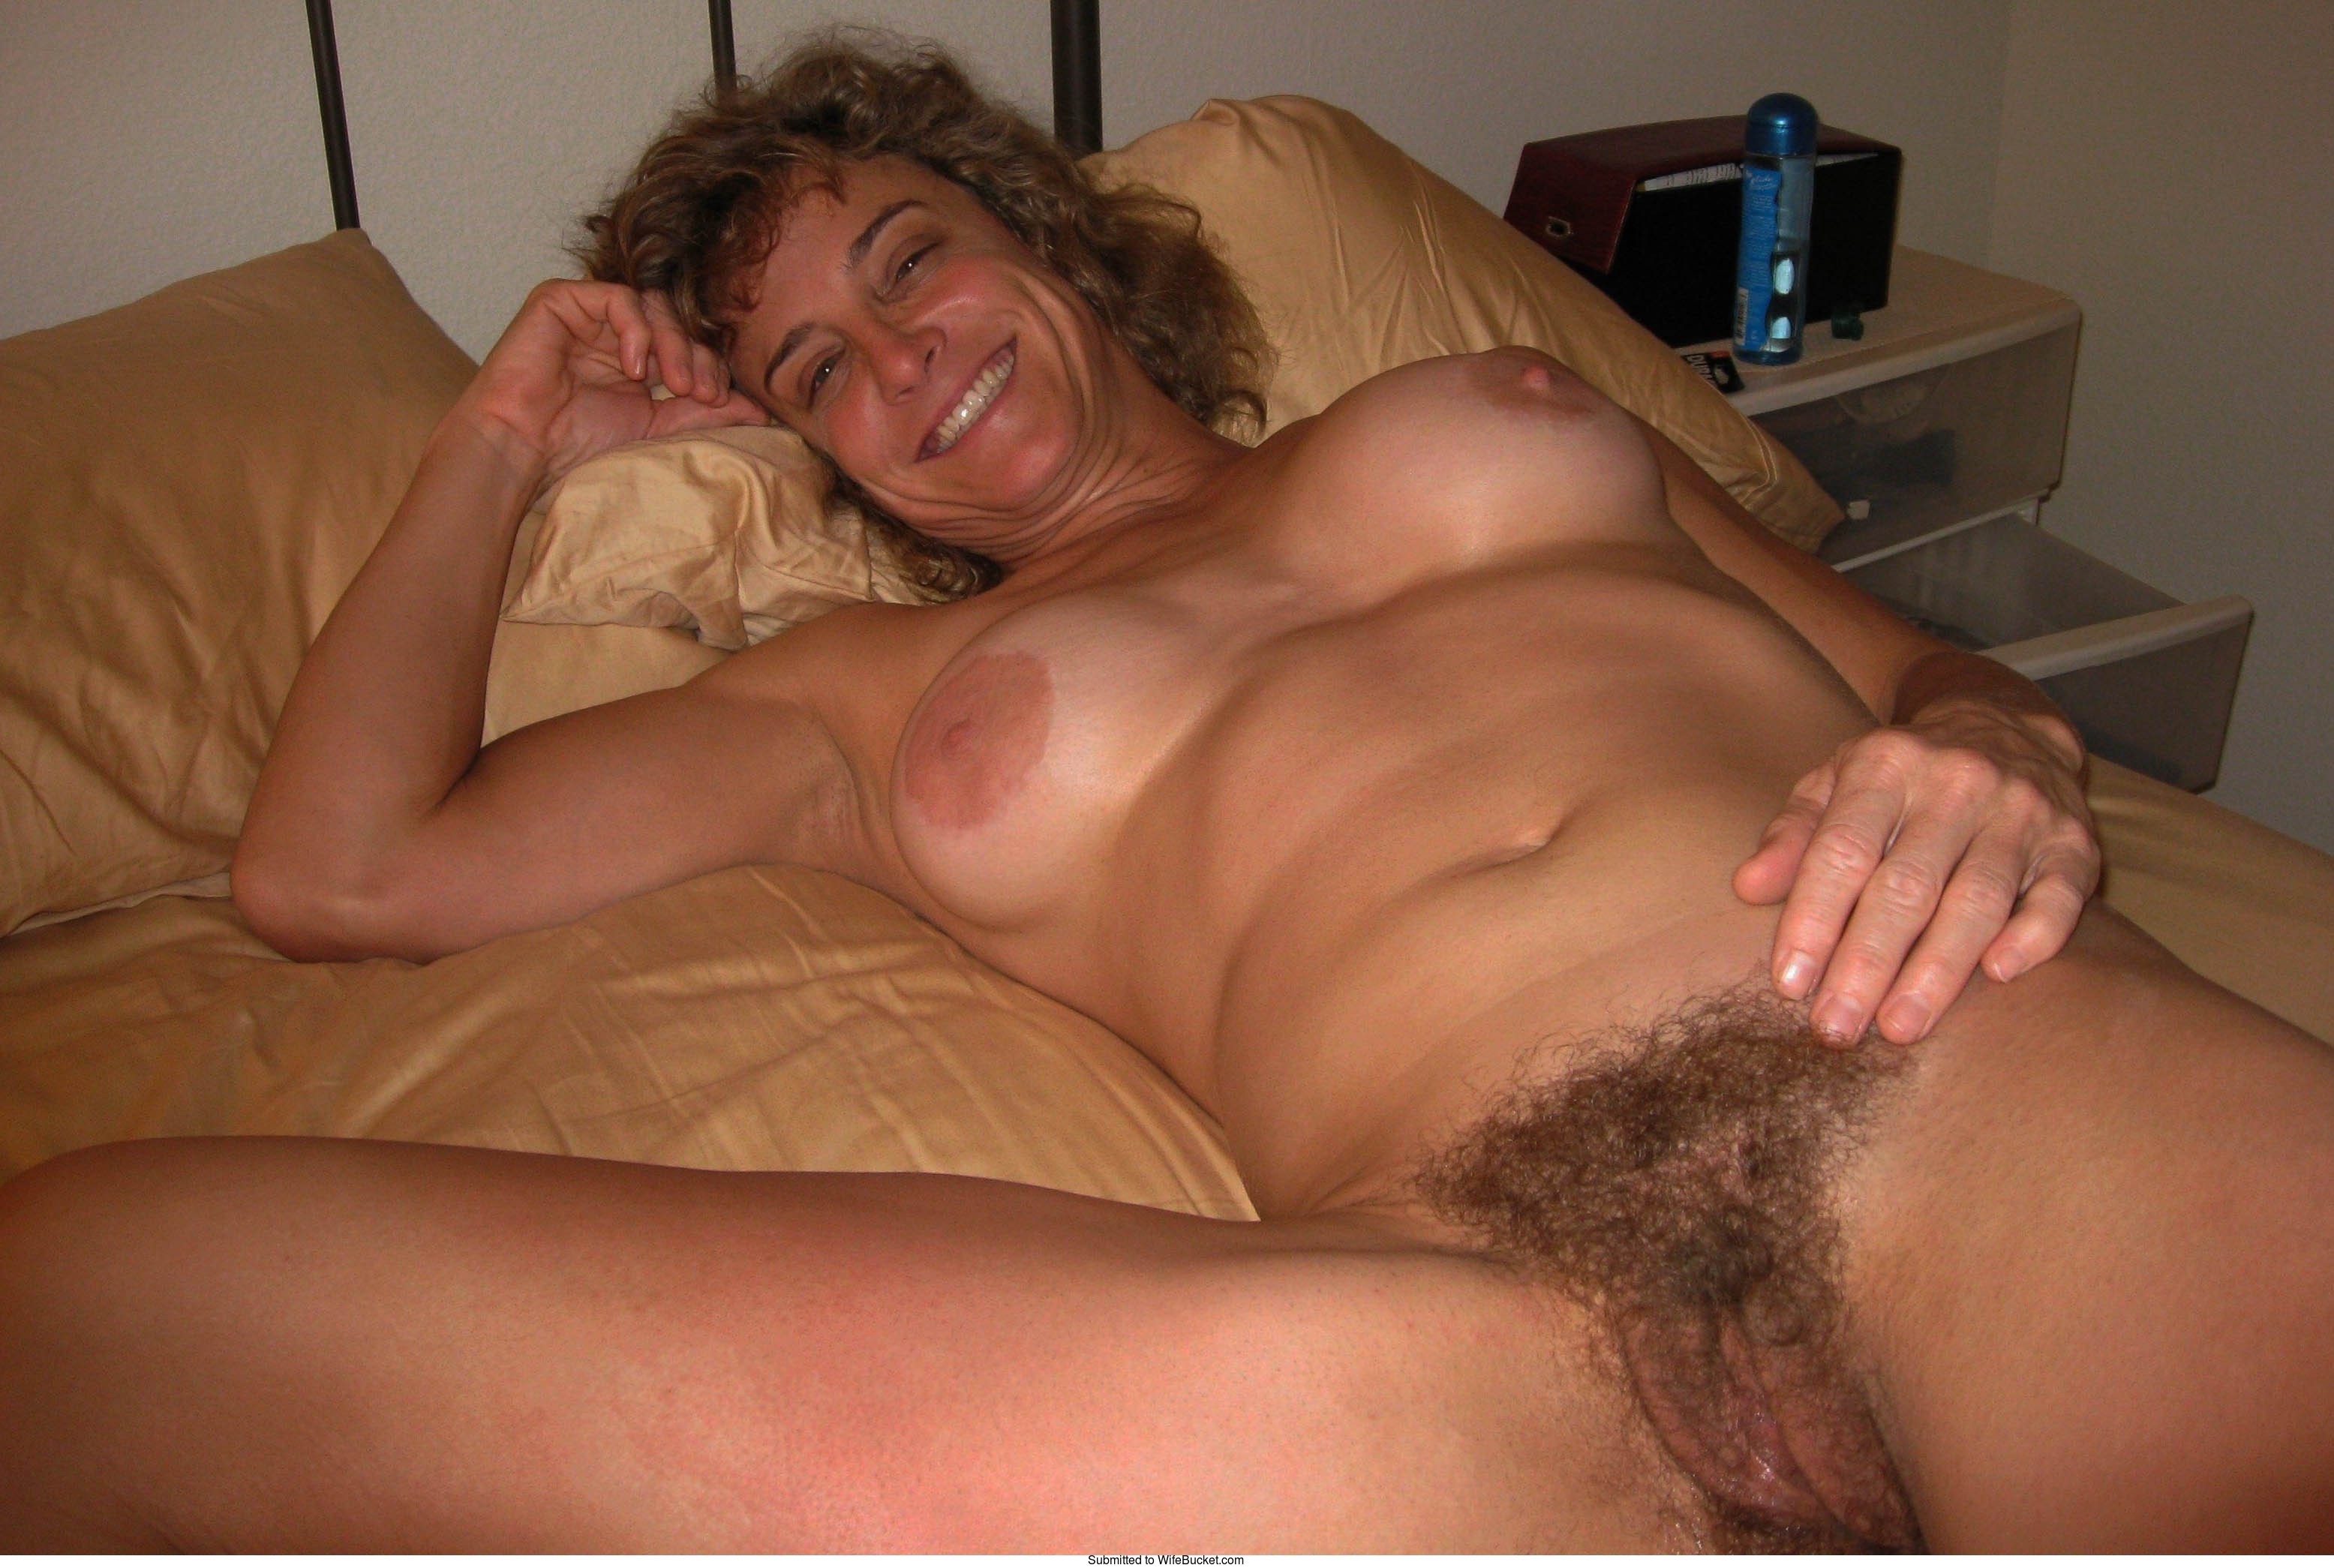 Man mature pic sex woman young